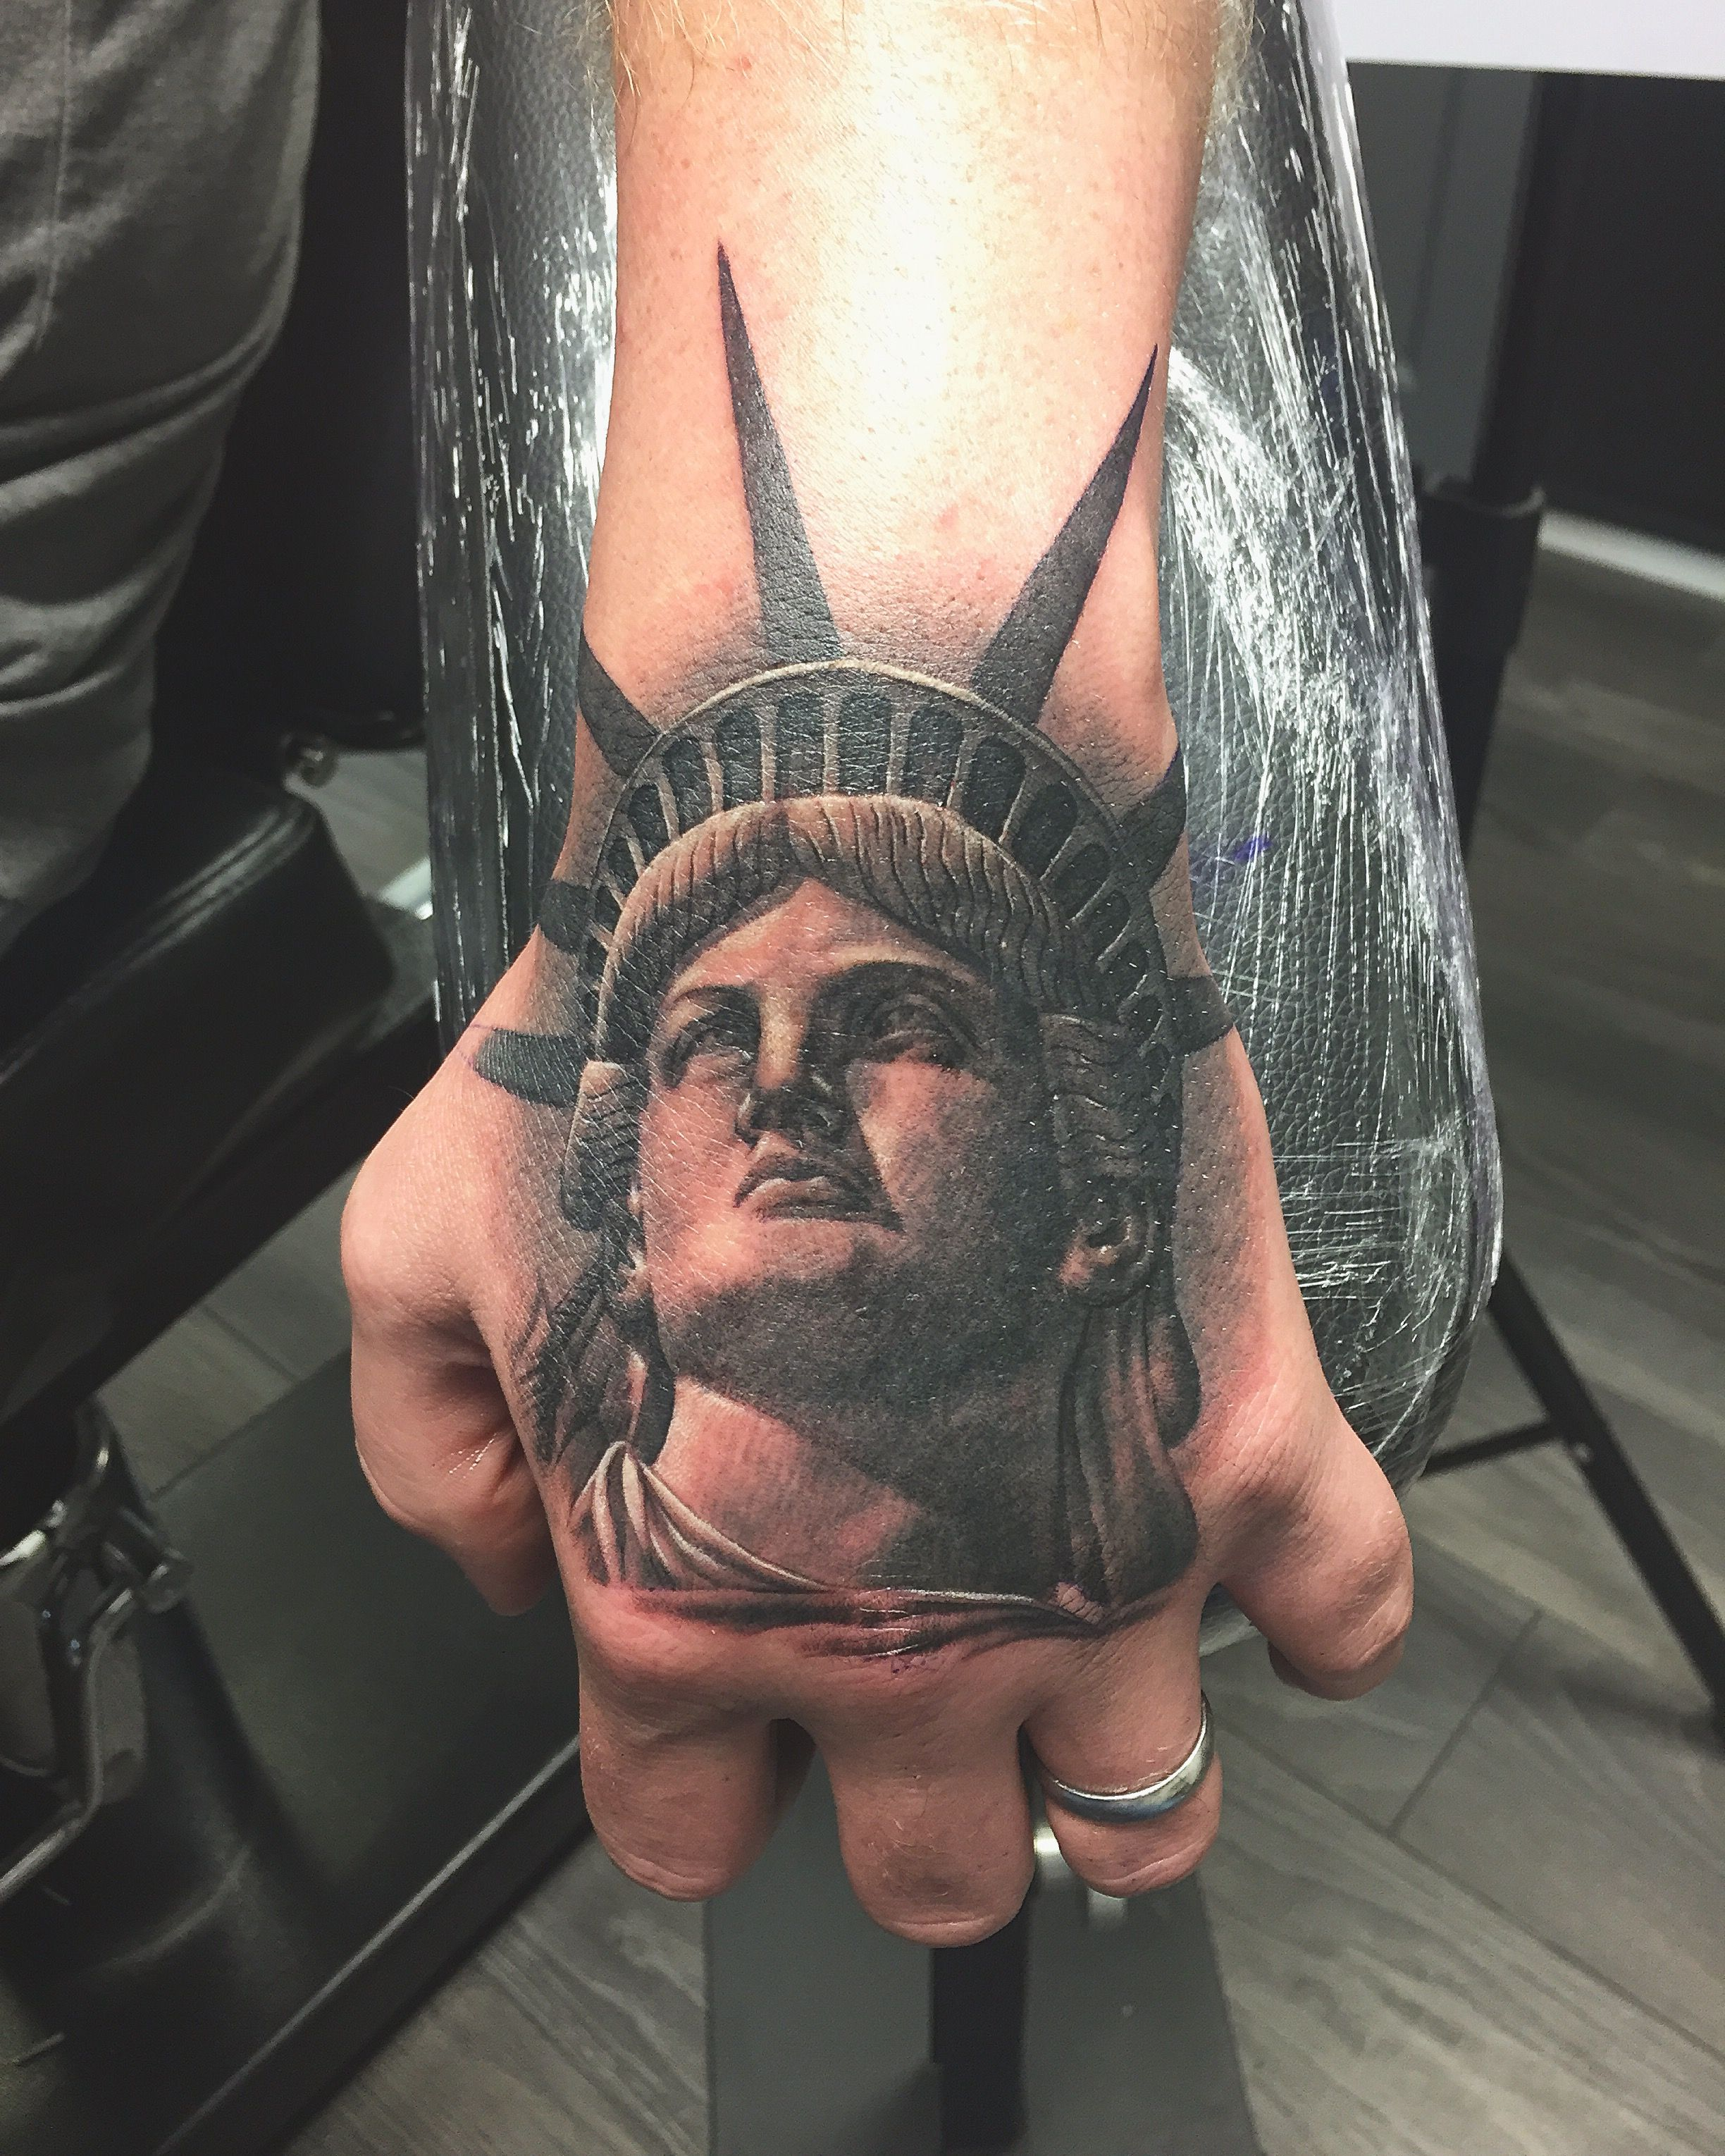 eb99c493f91b8 i love it! Lady liberty New York City hand tattoo | New shit in 2017 ...